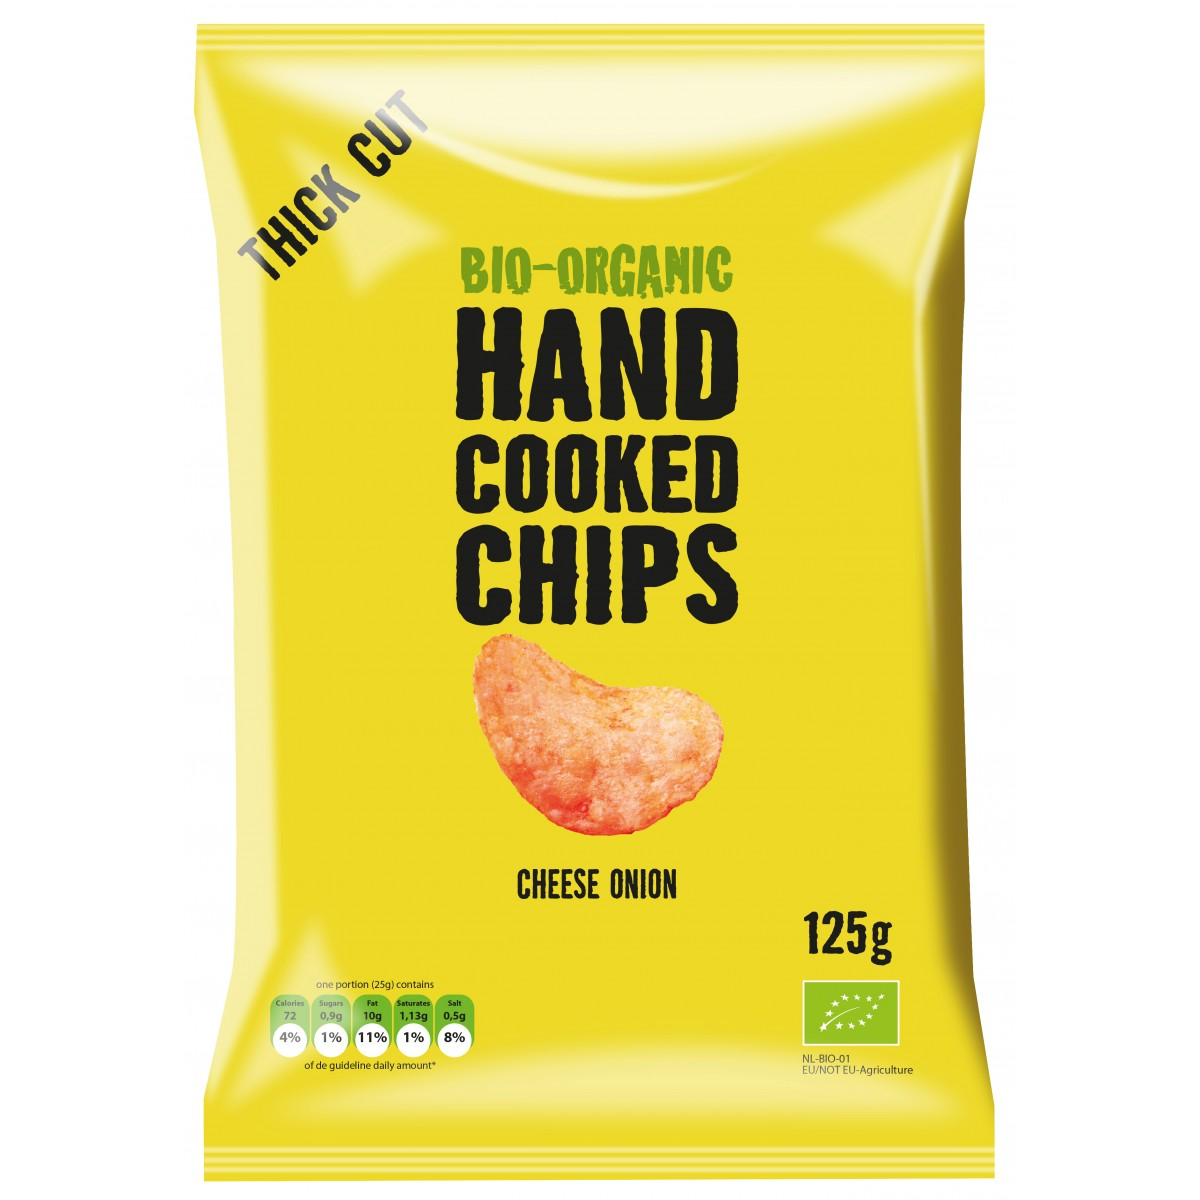 Handcooked Chips Cheese Onion